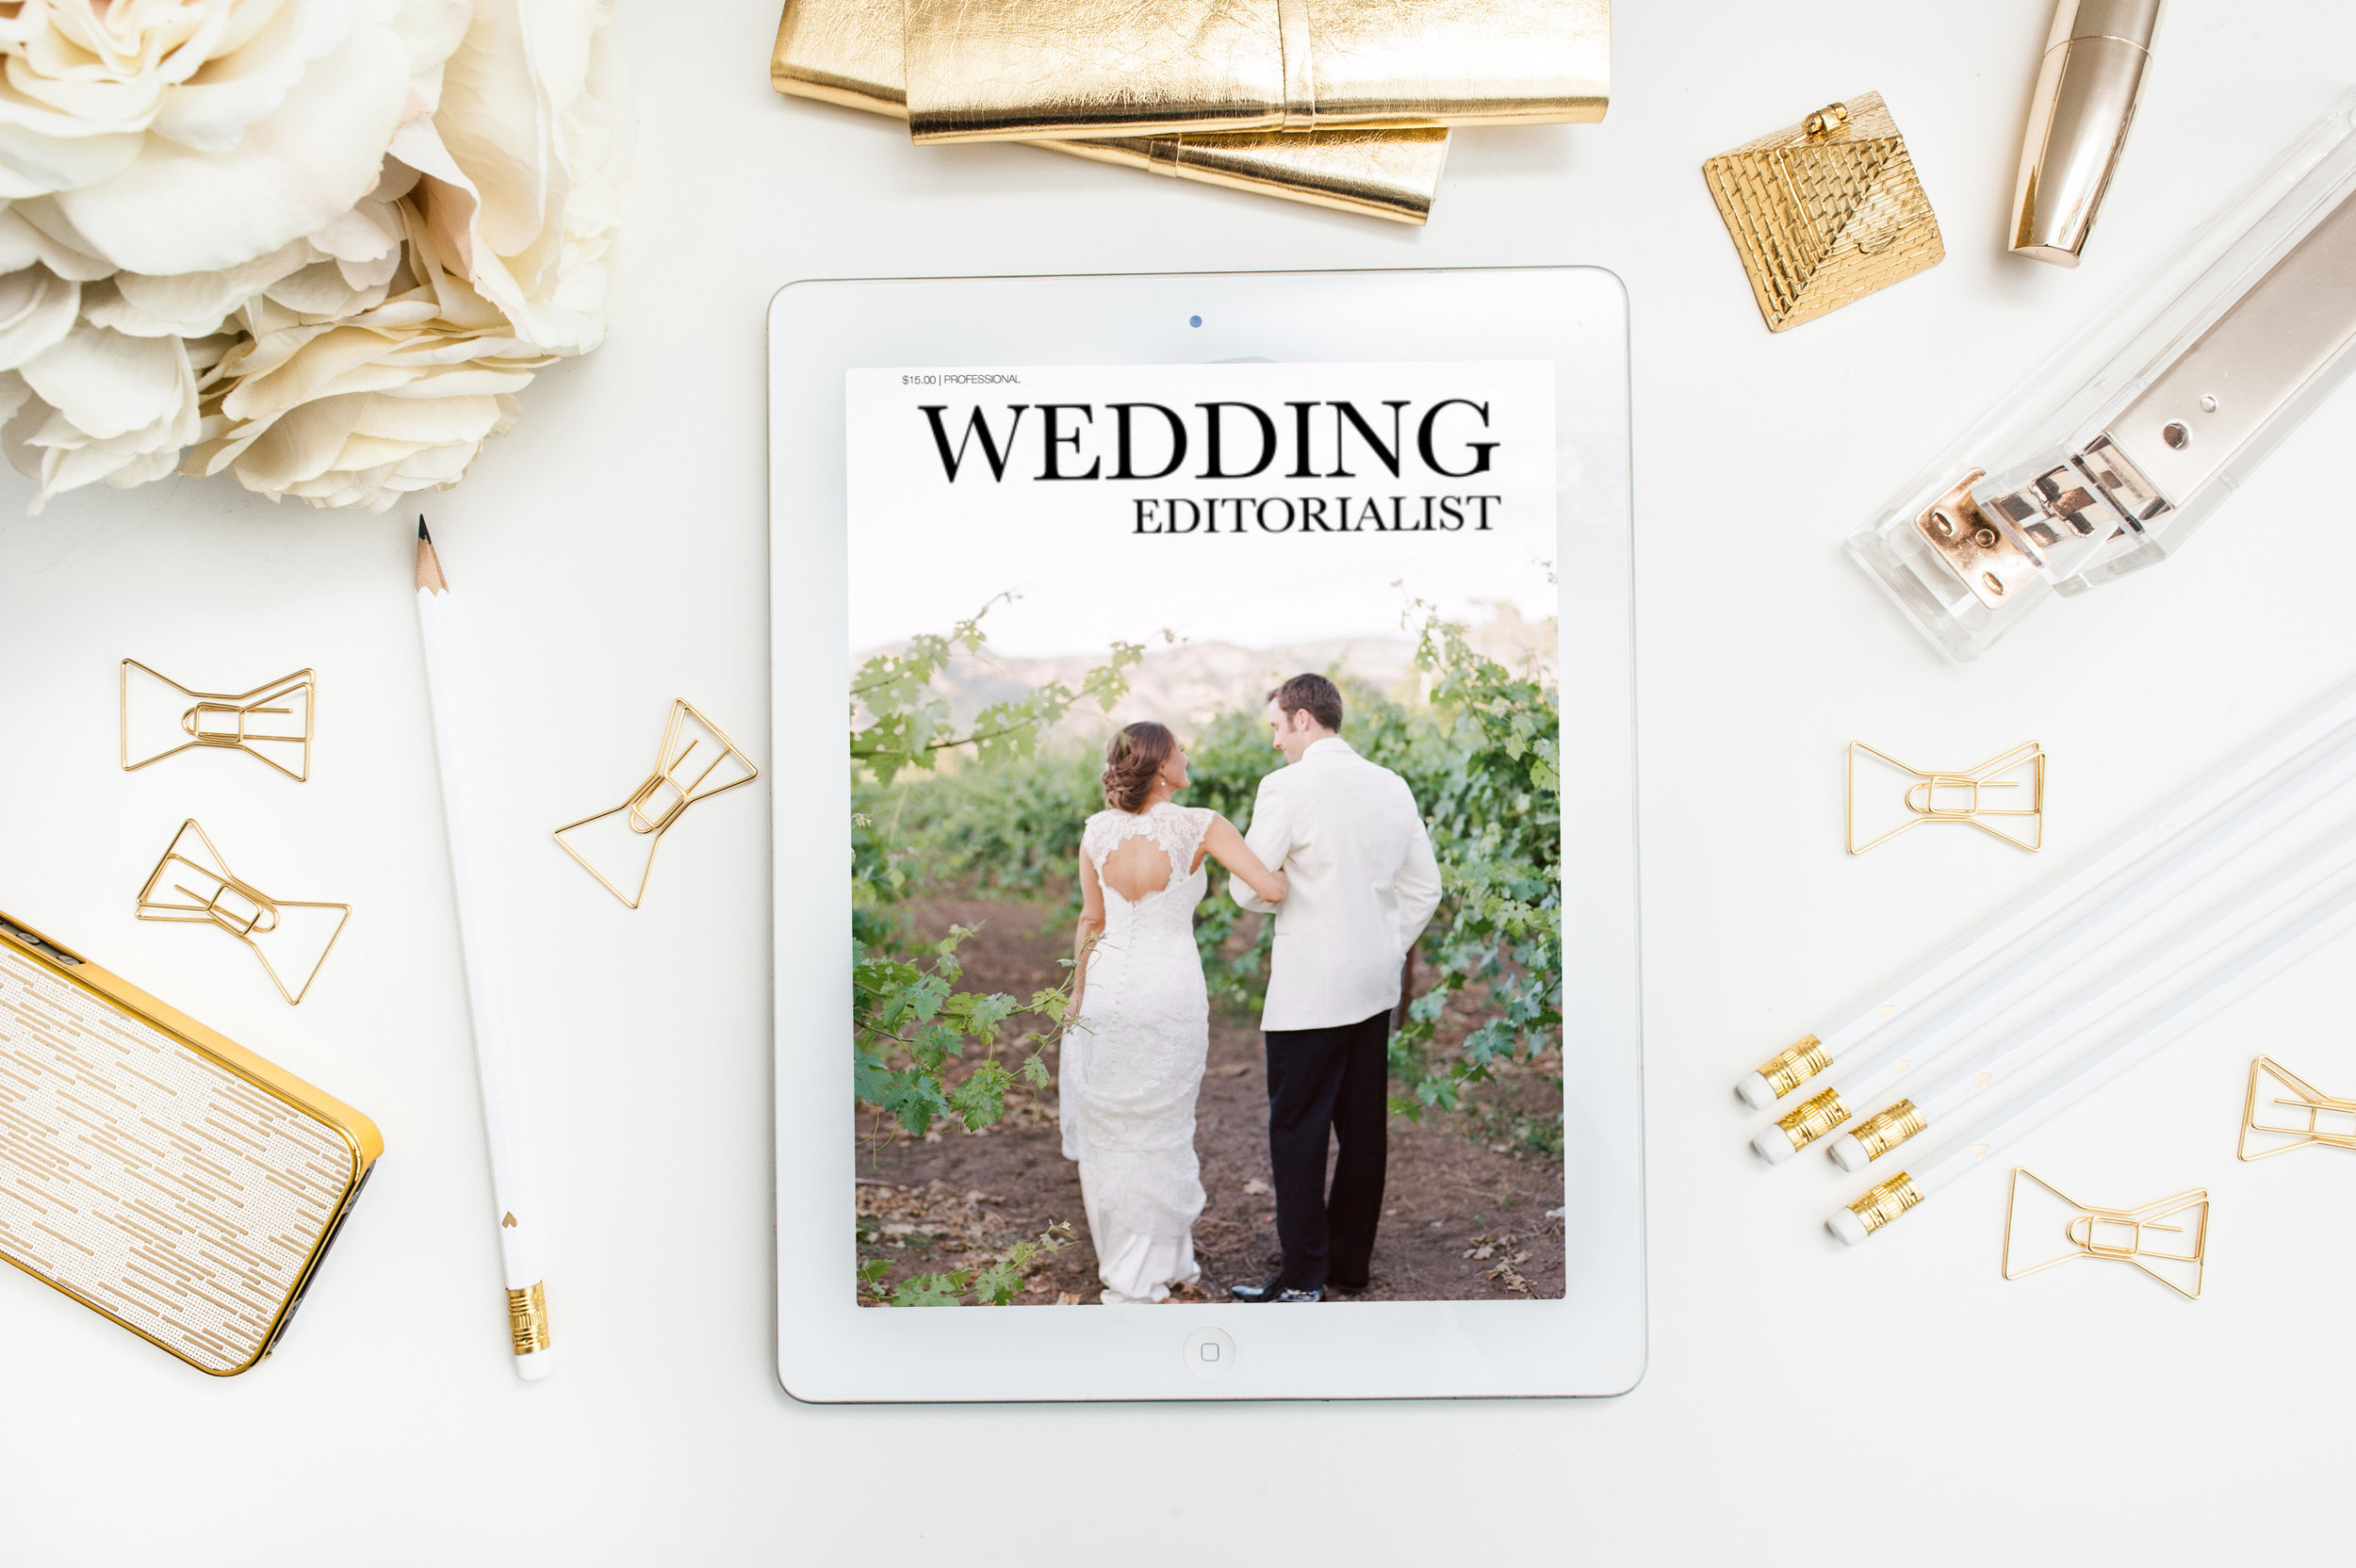 PROFESSIONAL PIECE:  The Wedding Editorialist is proud to present you with this issue dedicated to The Estate Yountville.. Located across a 23 acre campus in the famed Napa Valley region, The Estate Yountville boasts two stunning hotels and a variety of spaces where couples can host their weddings. Hotel rooms, elite spa services, restaurants, shopping, beautiful dishes and exemplary services, The Estate Yountville is the most highly sought after venue in the region. To read more,  CLICK HERE.